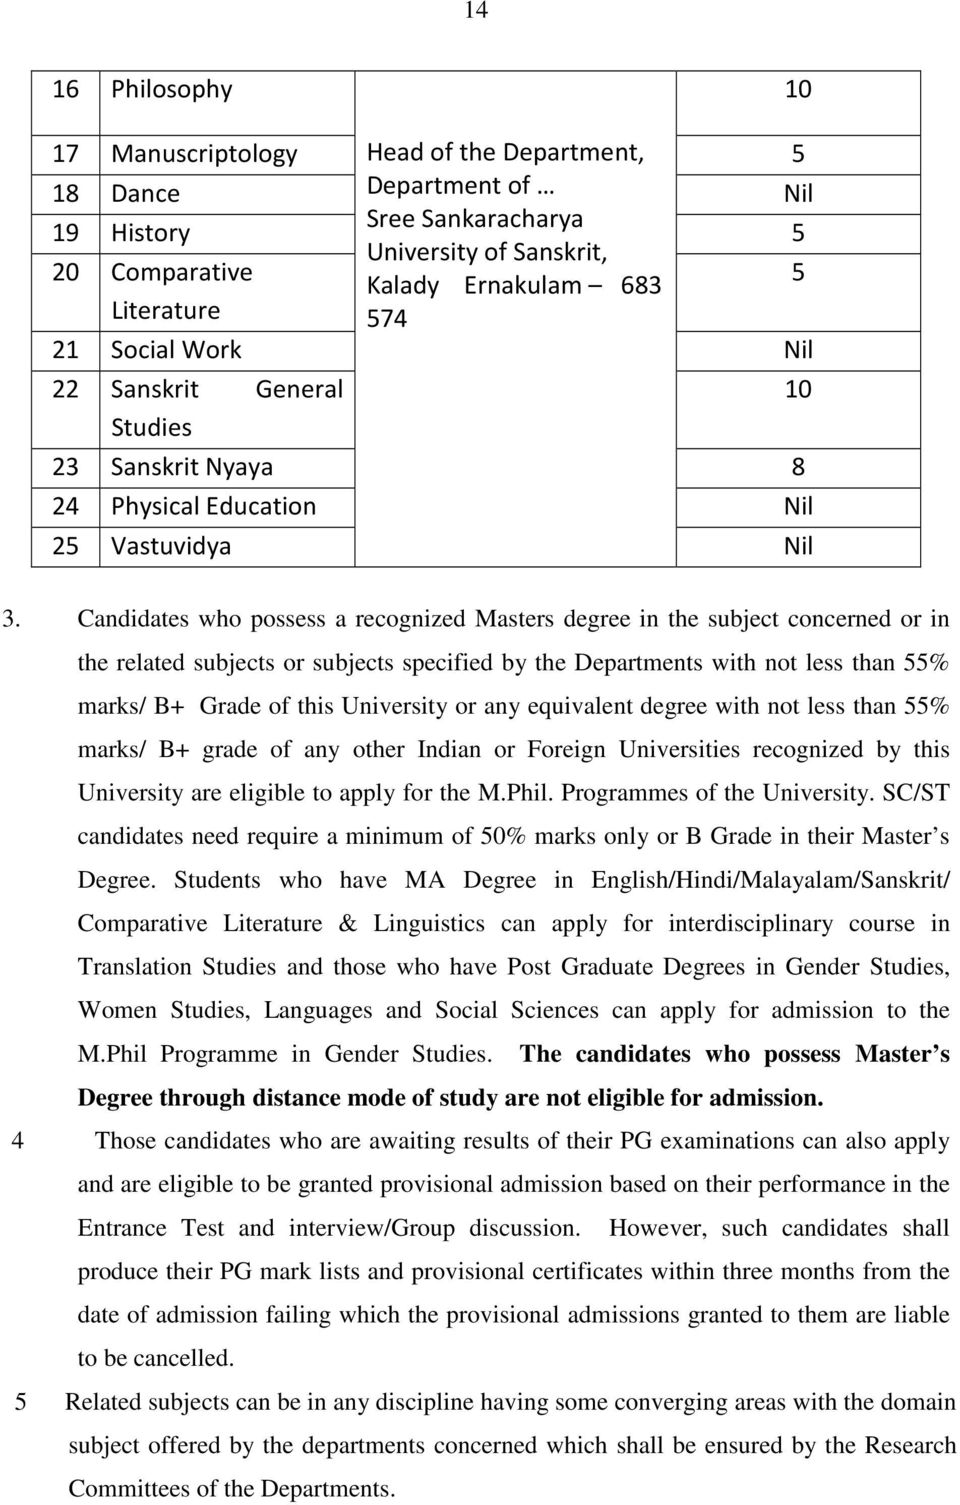 Candidates who possess a recognized Masters degree in the subject concerned or in the related subjects or subjects specified by the Departments with not less than 55% marks/ B+ Grade of this